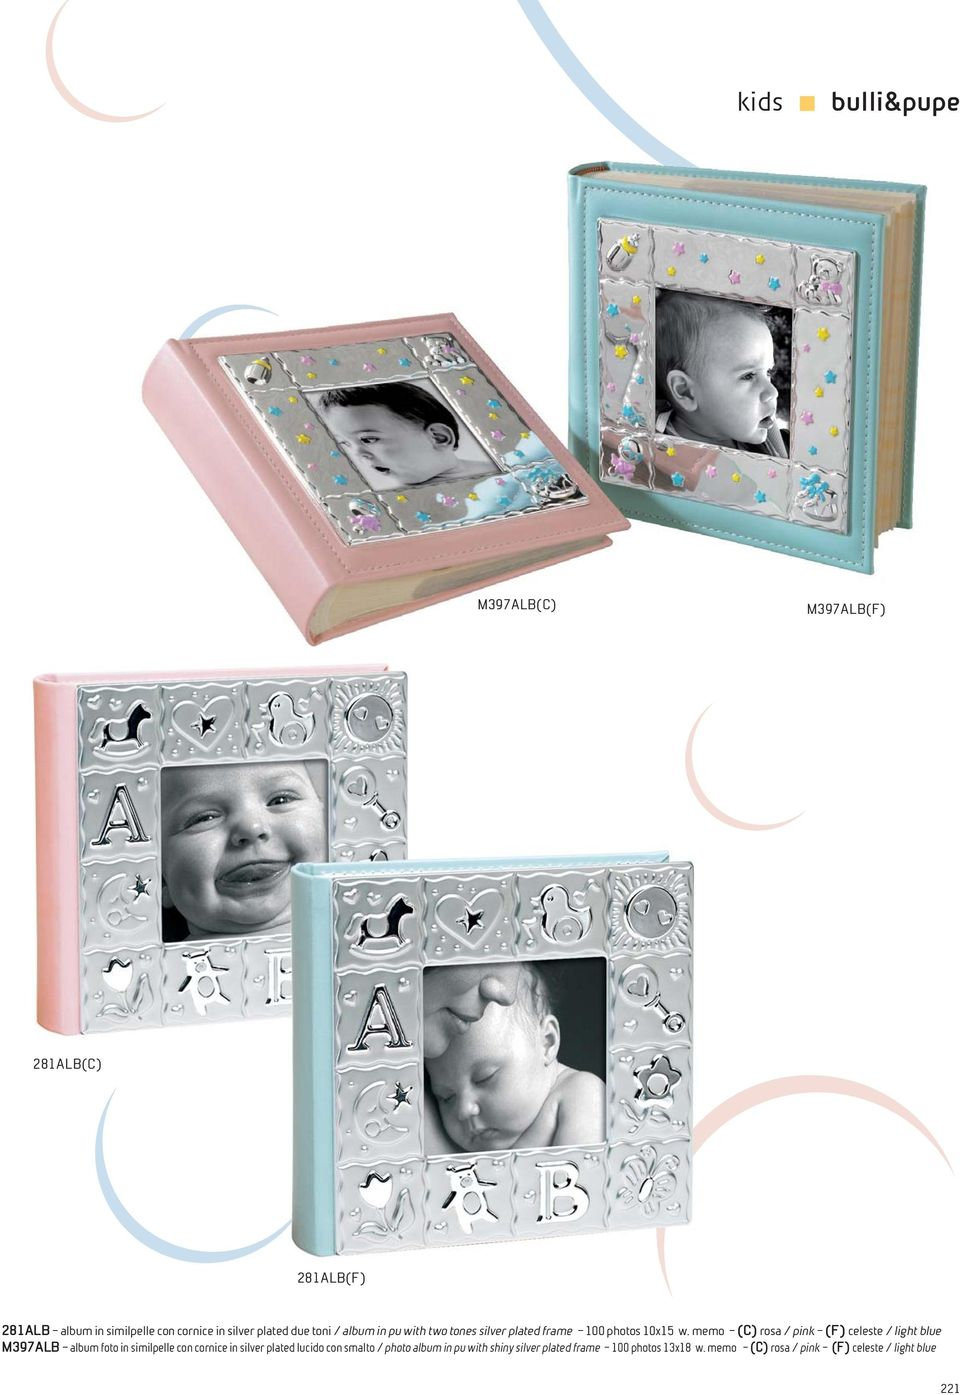 memo (C) rosa / pink (F) celeste / light blue M397ALB album foto in similpelle con cornice in silver plated